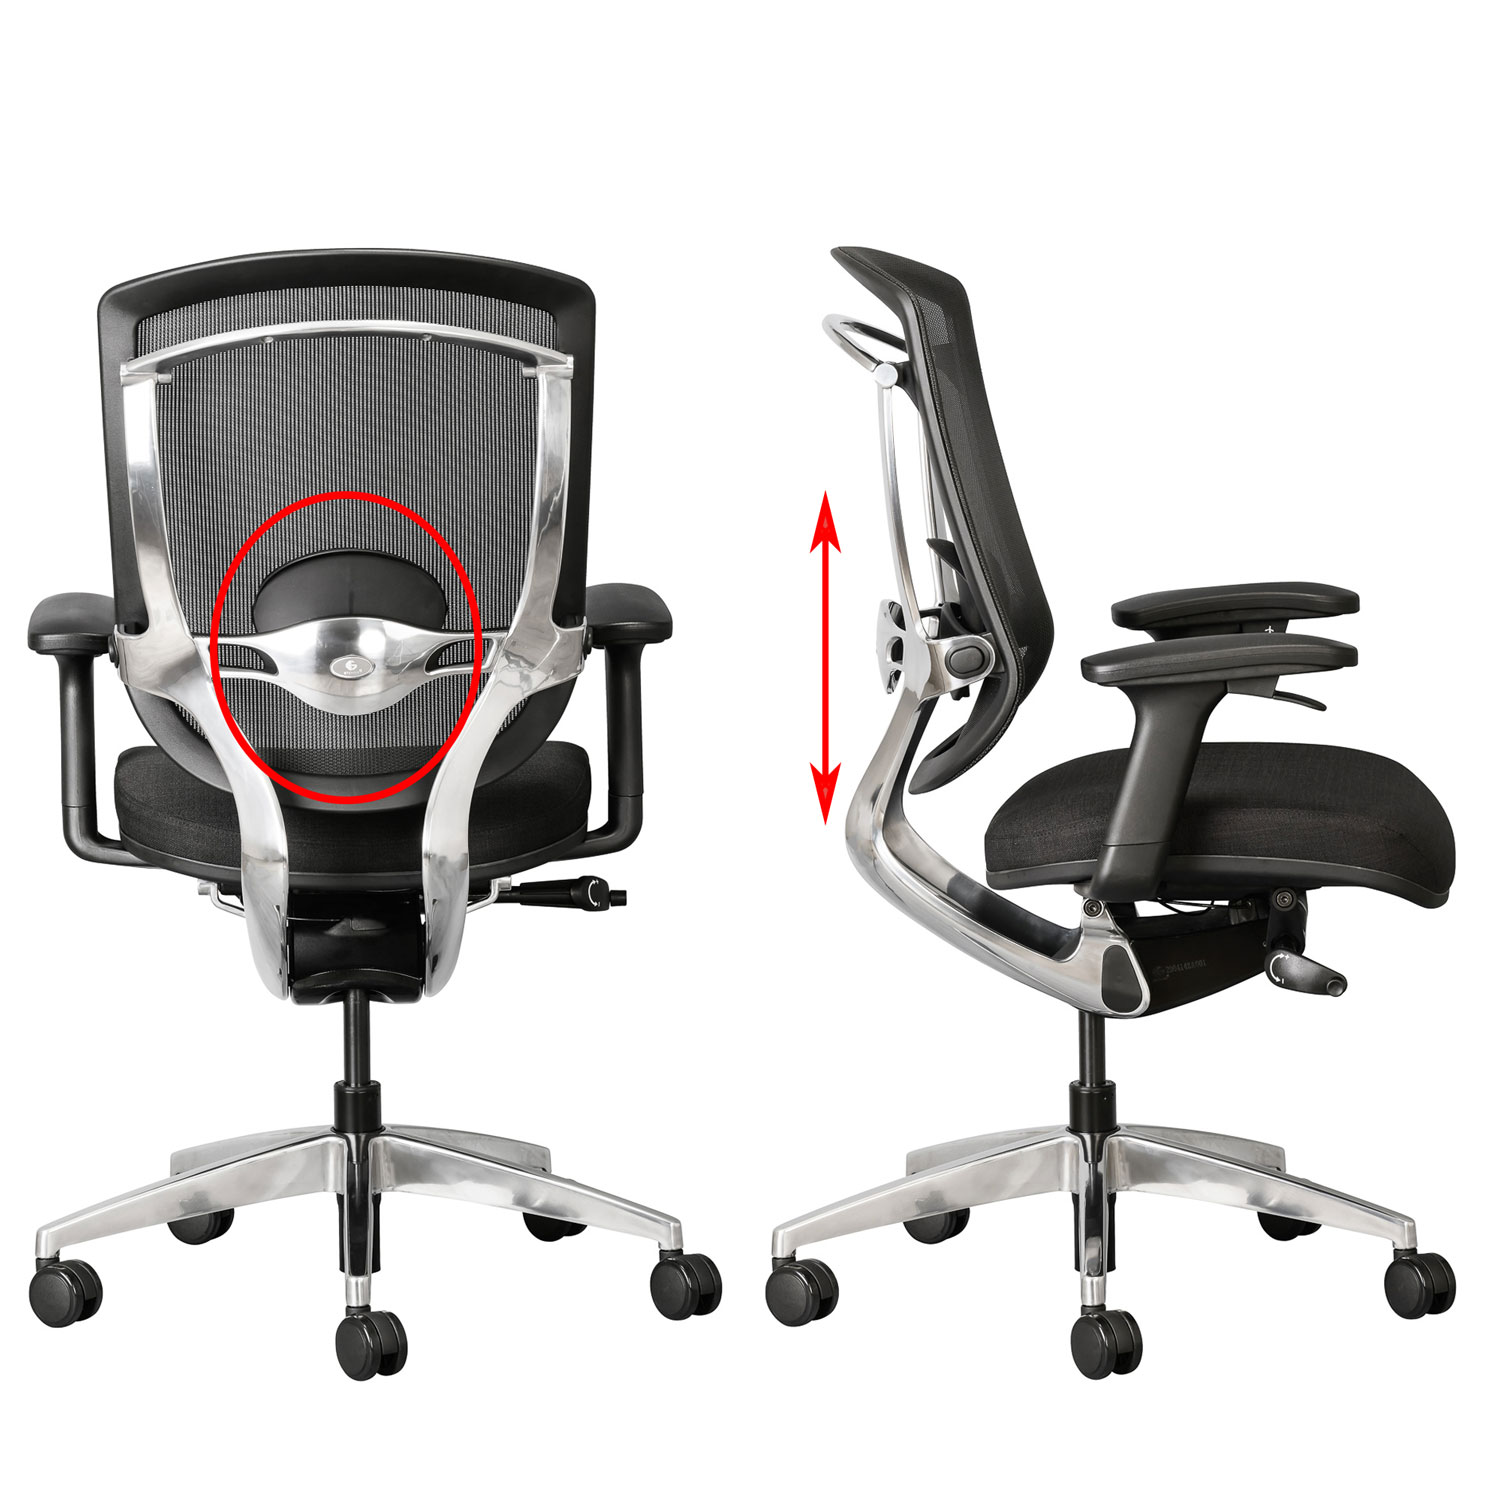 vertical lumbar support adjustment on Alya office chair